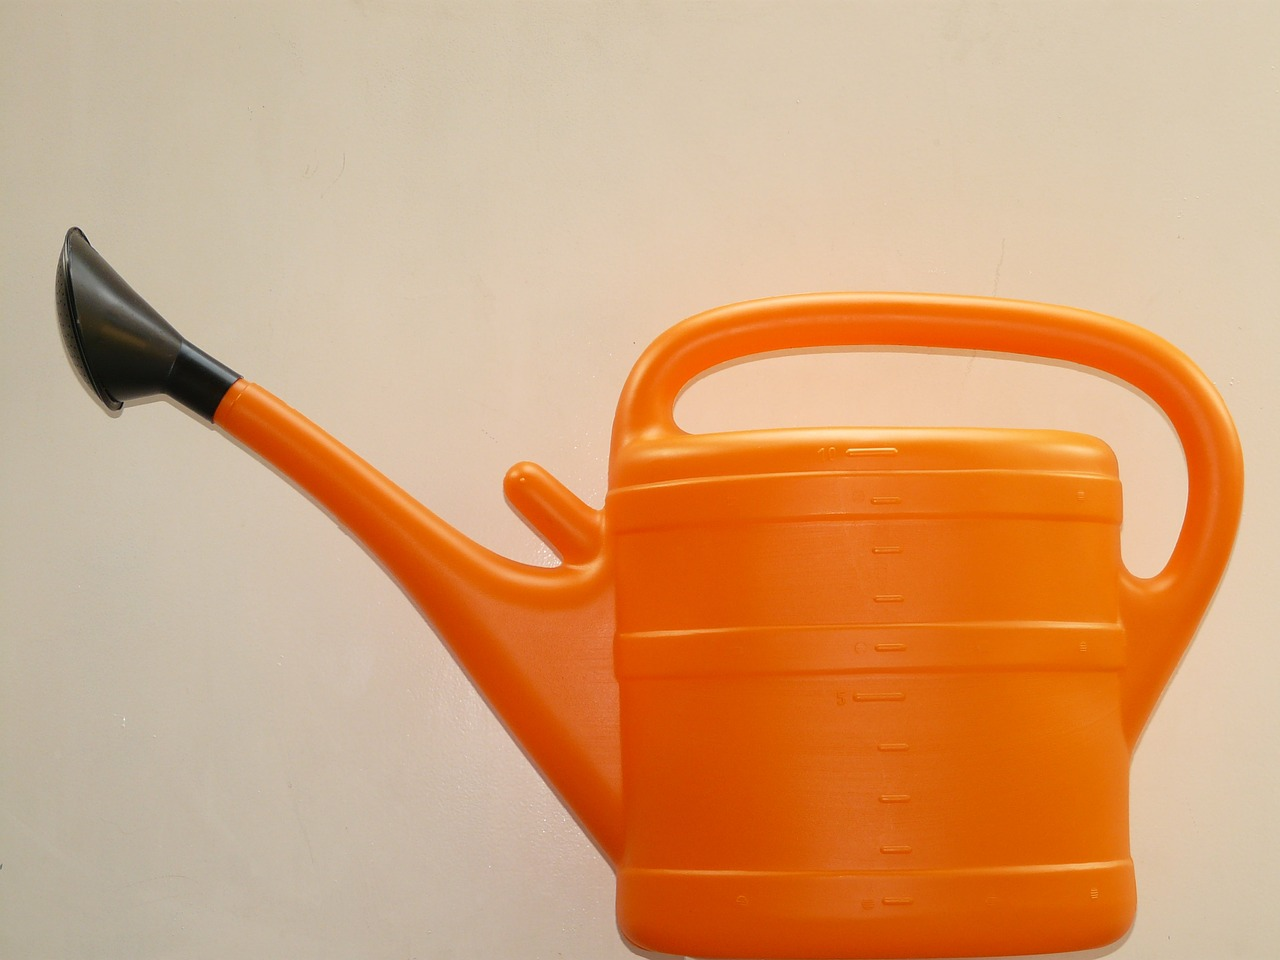 watering can casting orange free photo